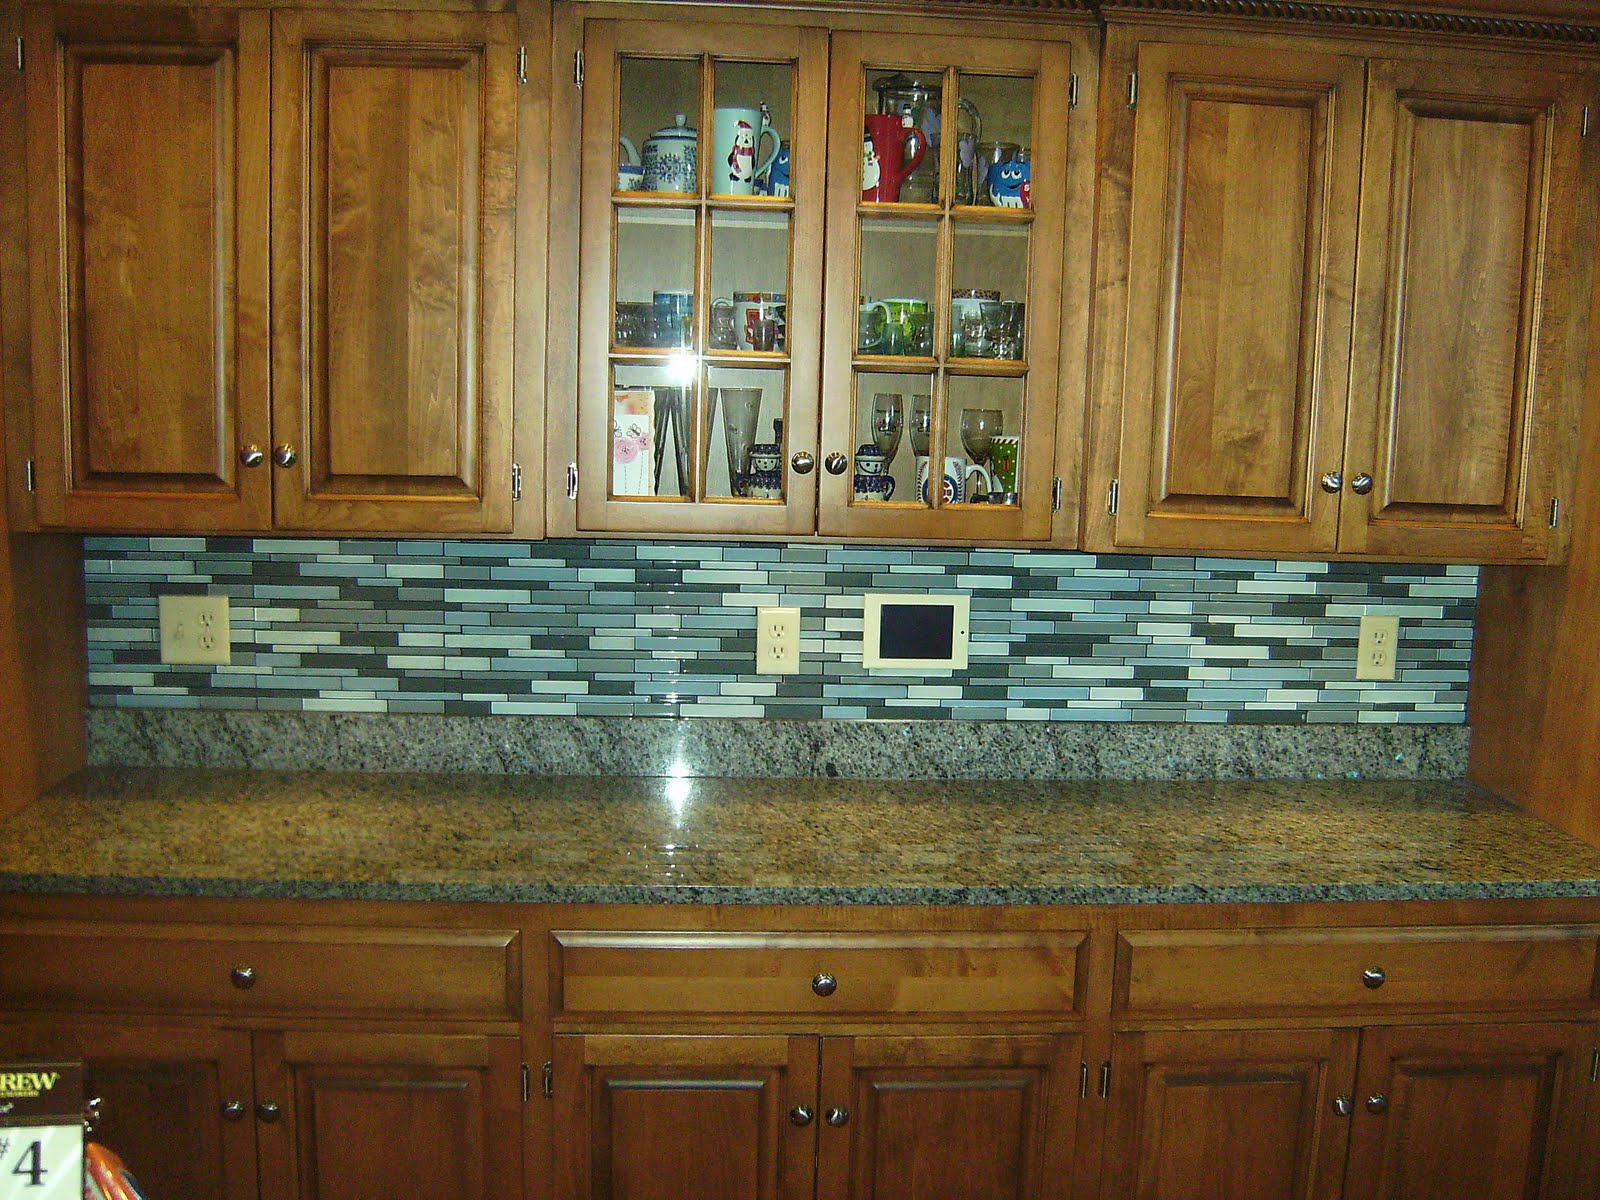 Backsplash Tile Knapp Tile And Flooring, Inc.: Glass Tile Backsplash